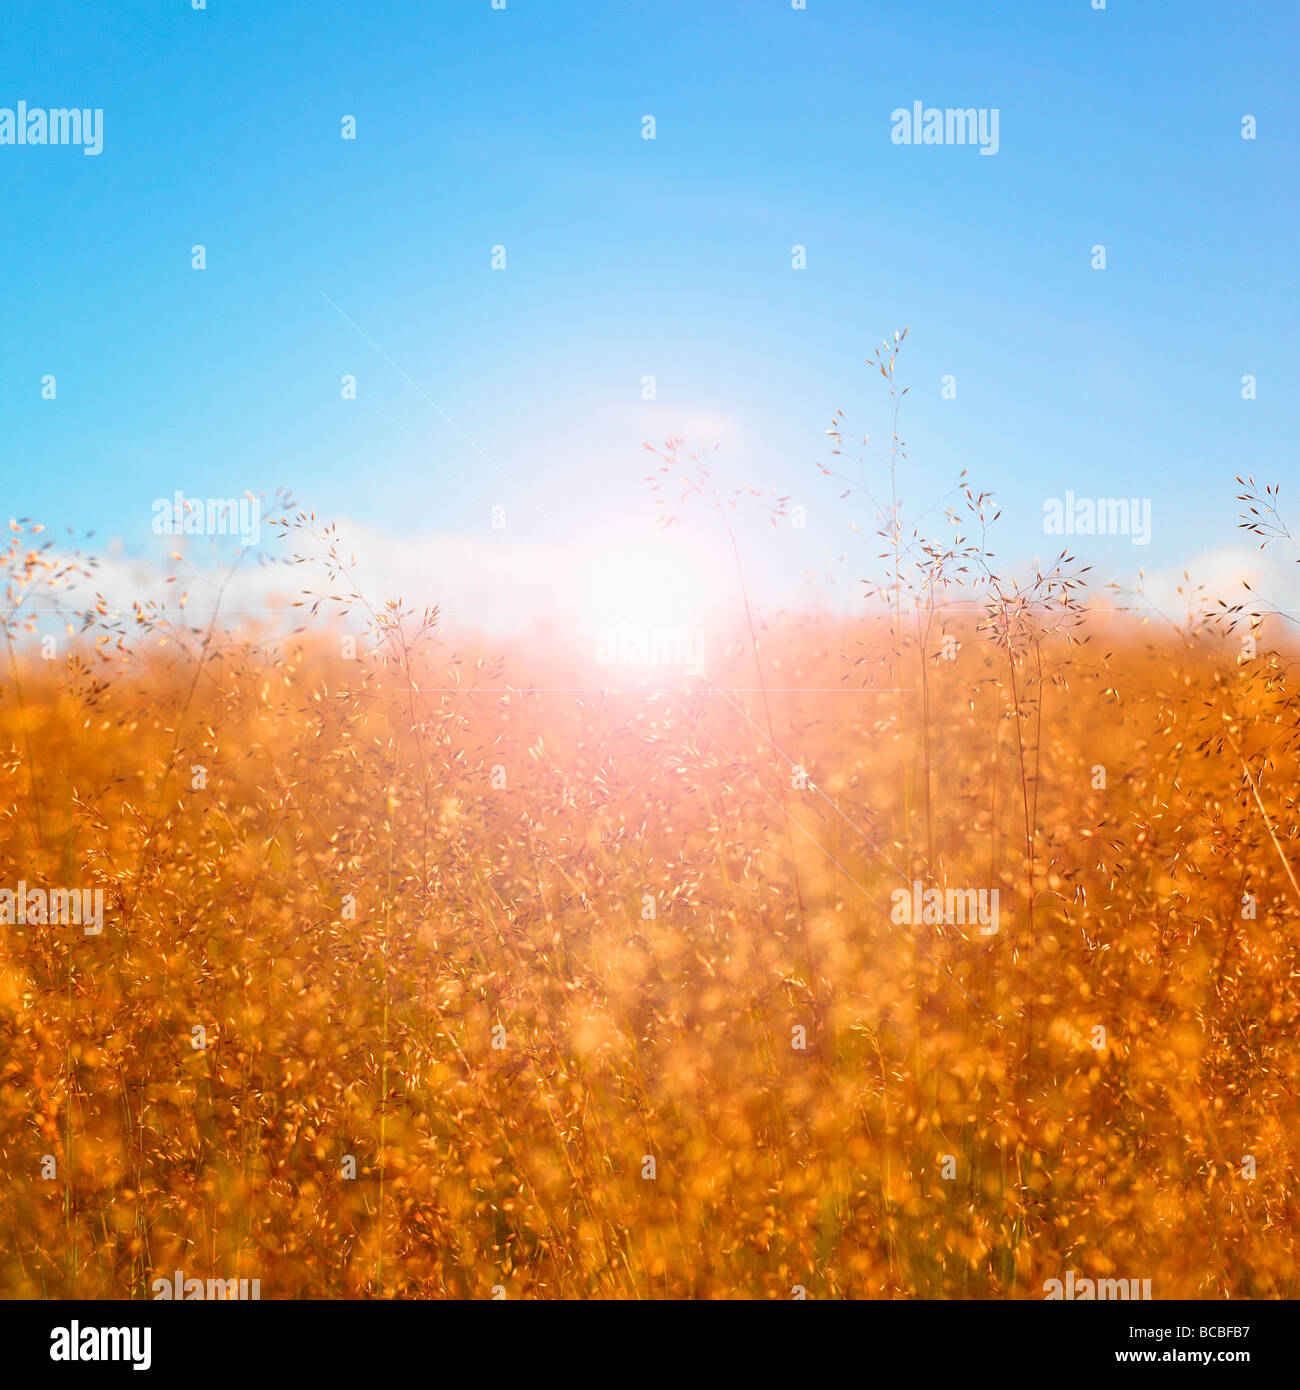 Grass seed heads with blue sky and sun. - Stock Image